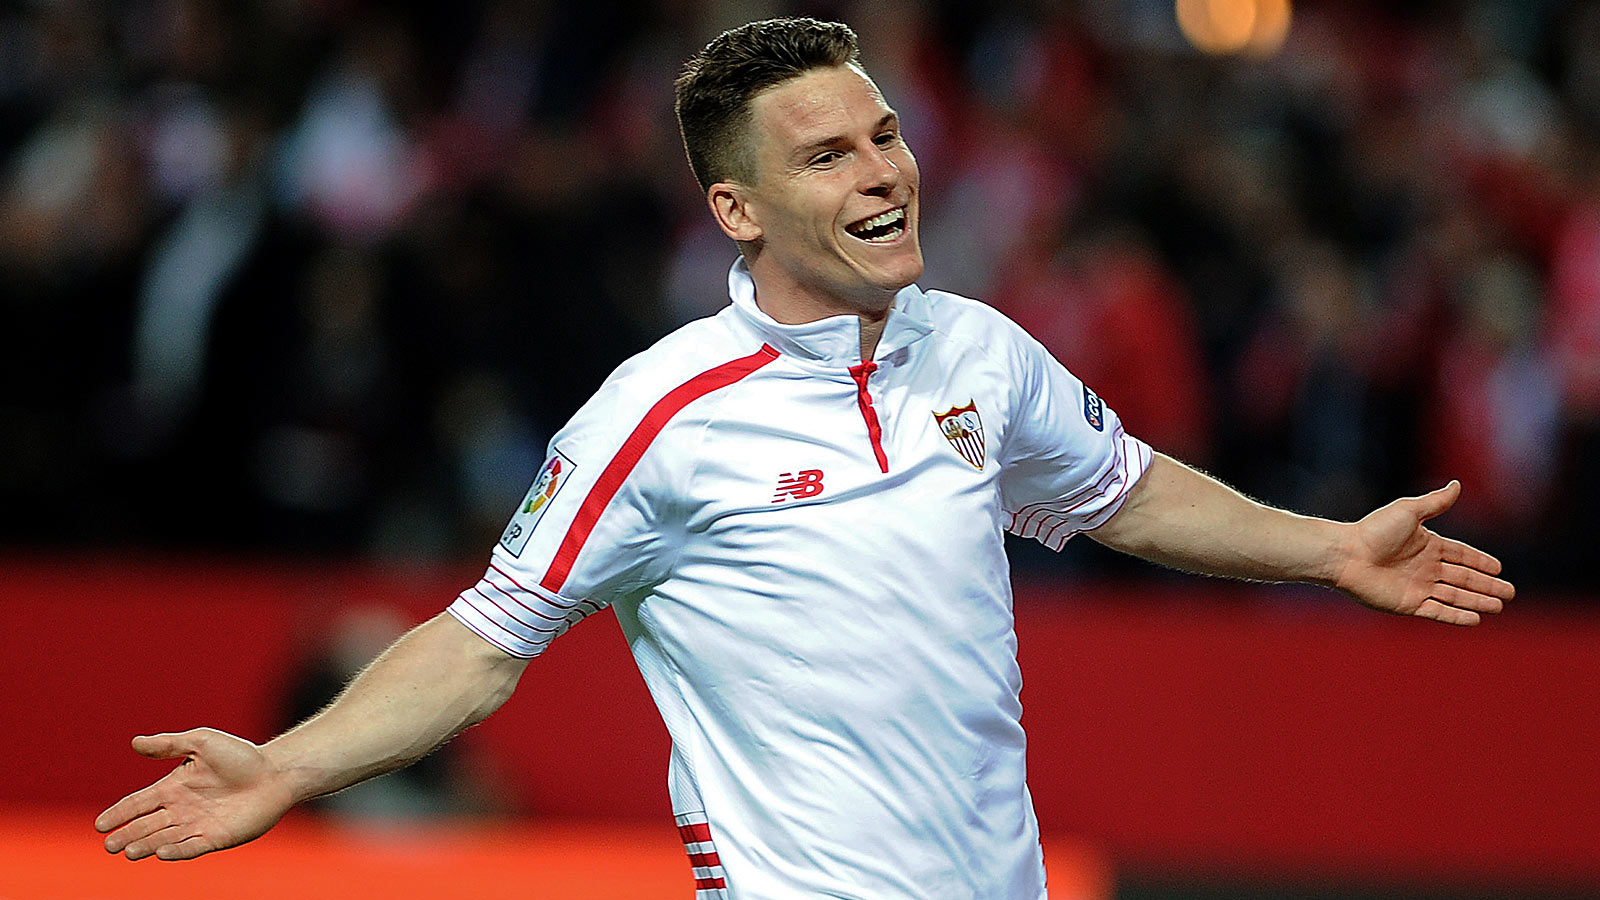 Sevilla run riot against Celta in Copa del Rey semis